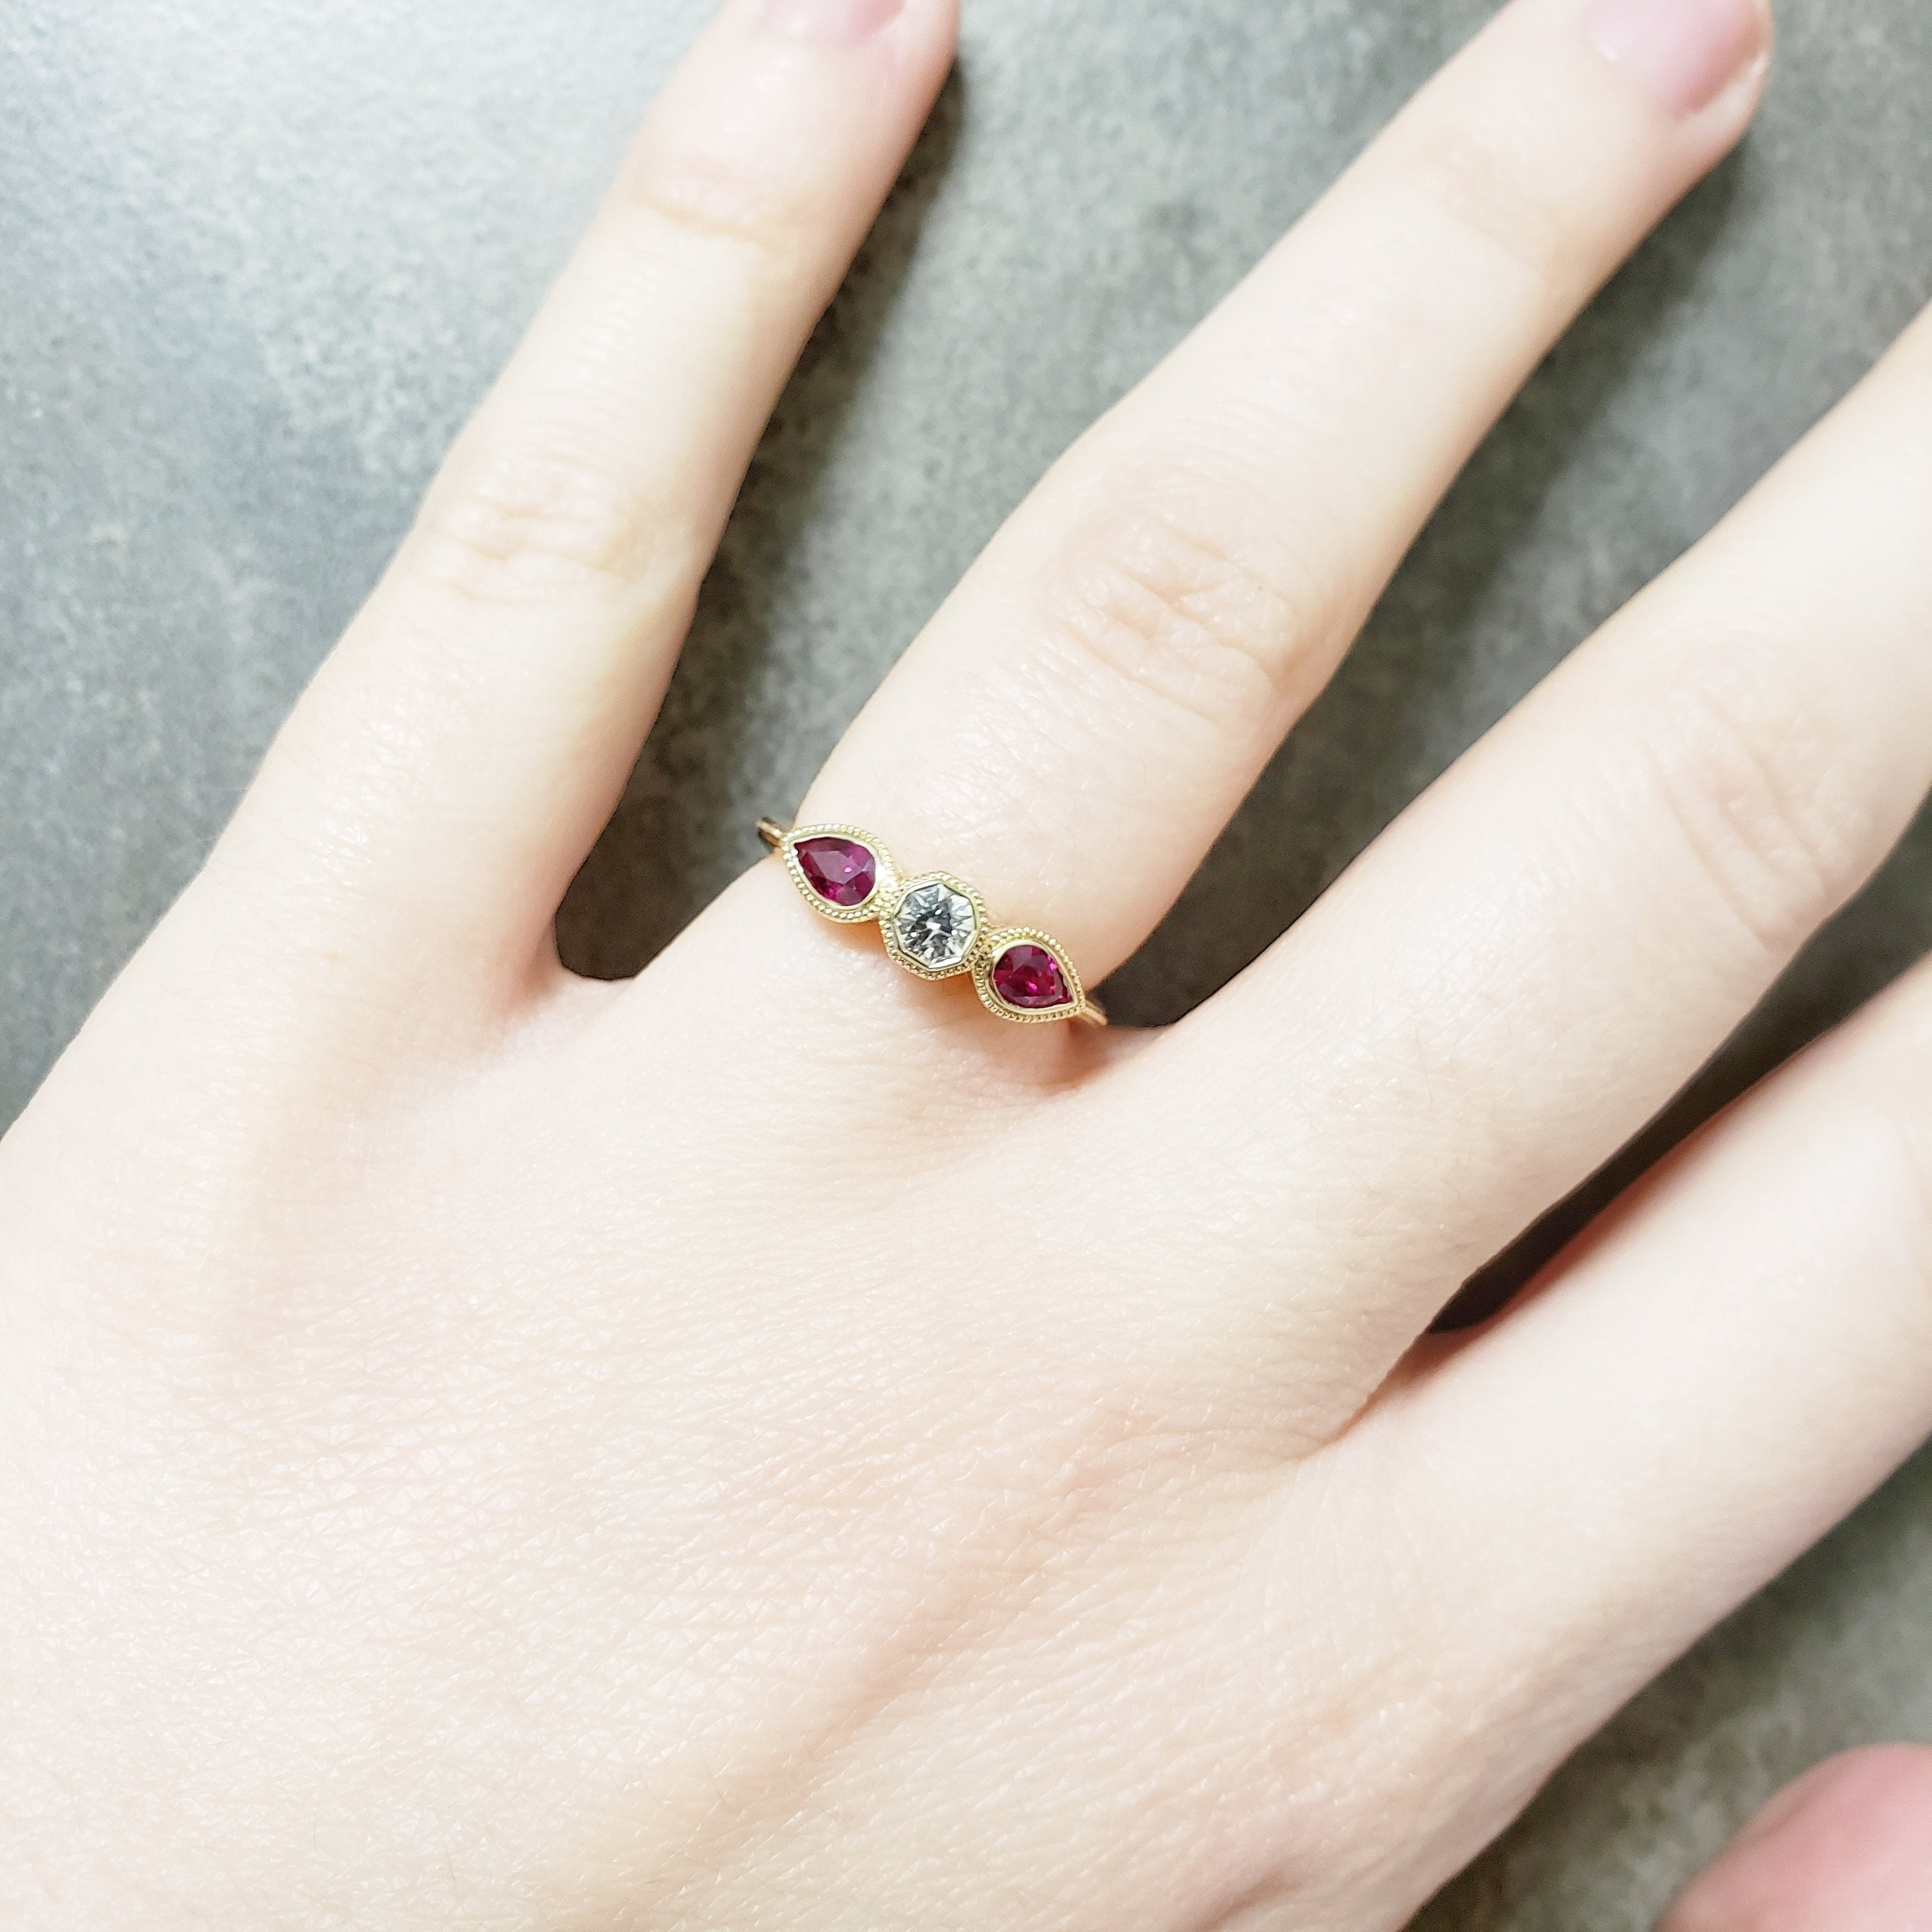 Anjou Gemstone Engagement Ring - Era Design Vancouver